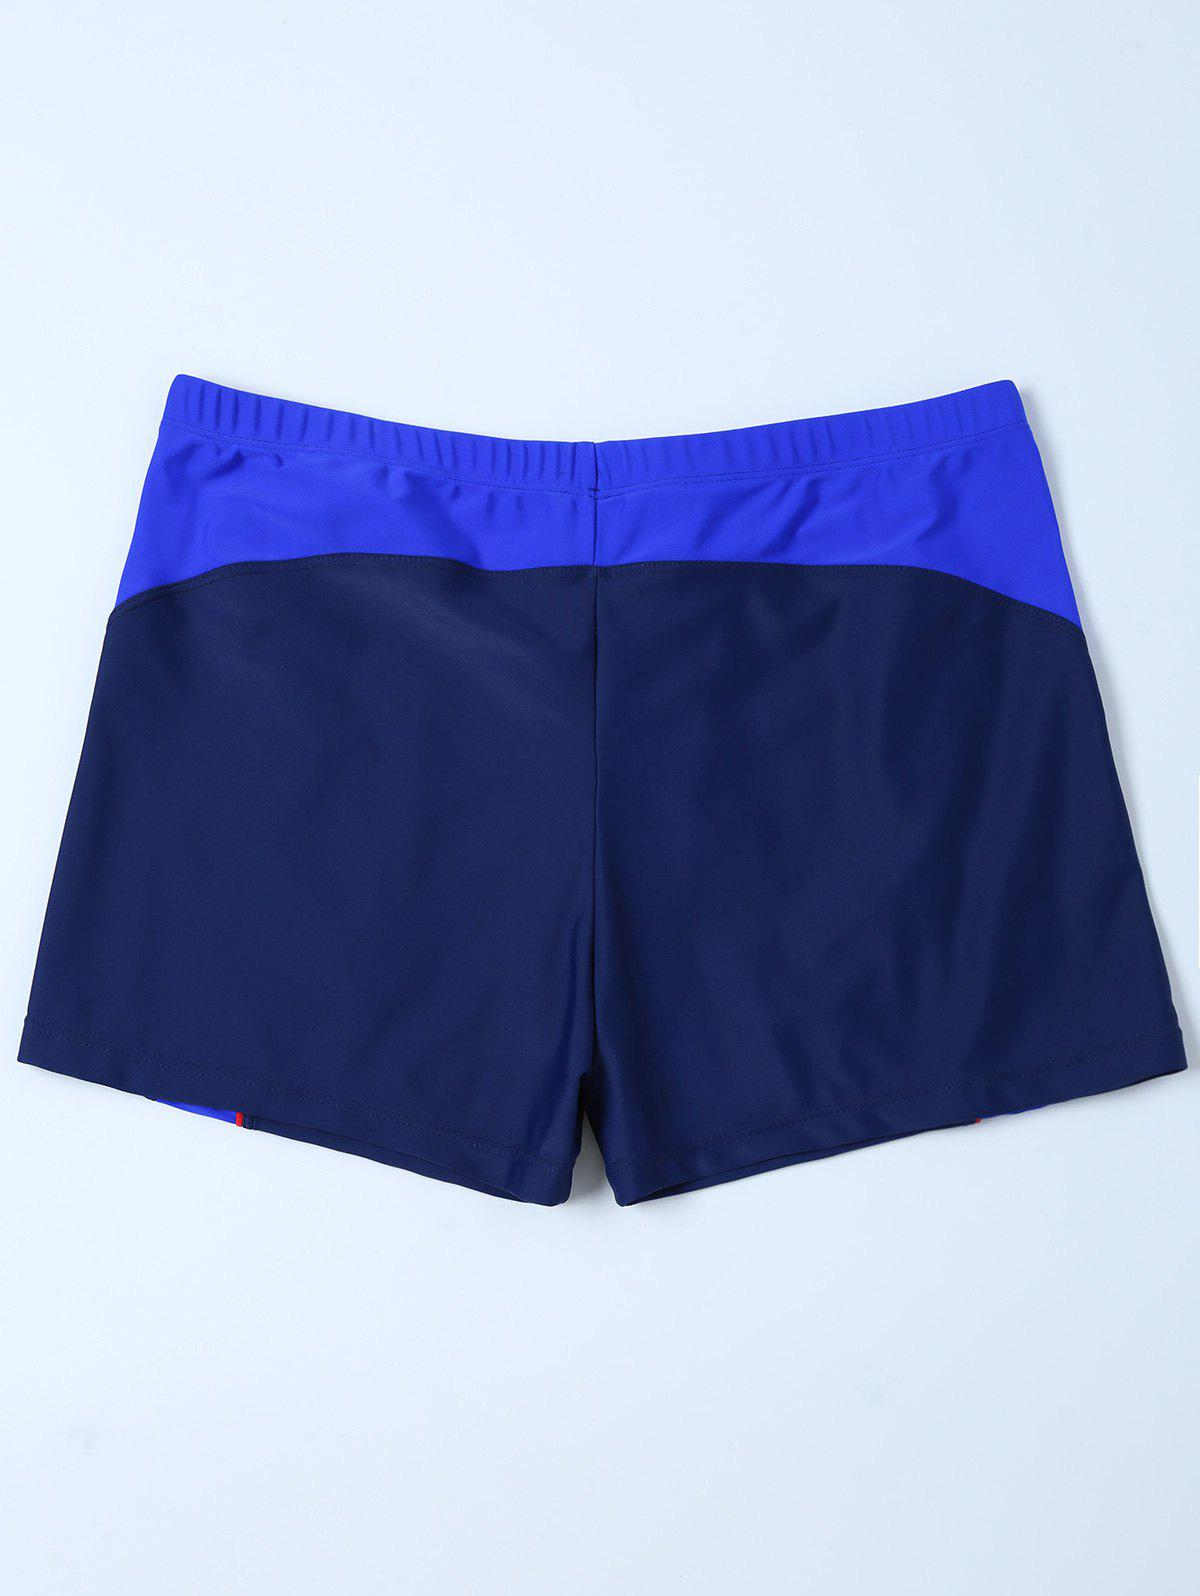 Contrast Surf Swimsuit Bottom Boyshorts - PURPLISH BLUE 2XL